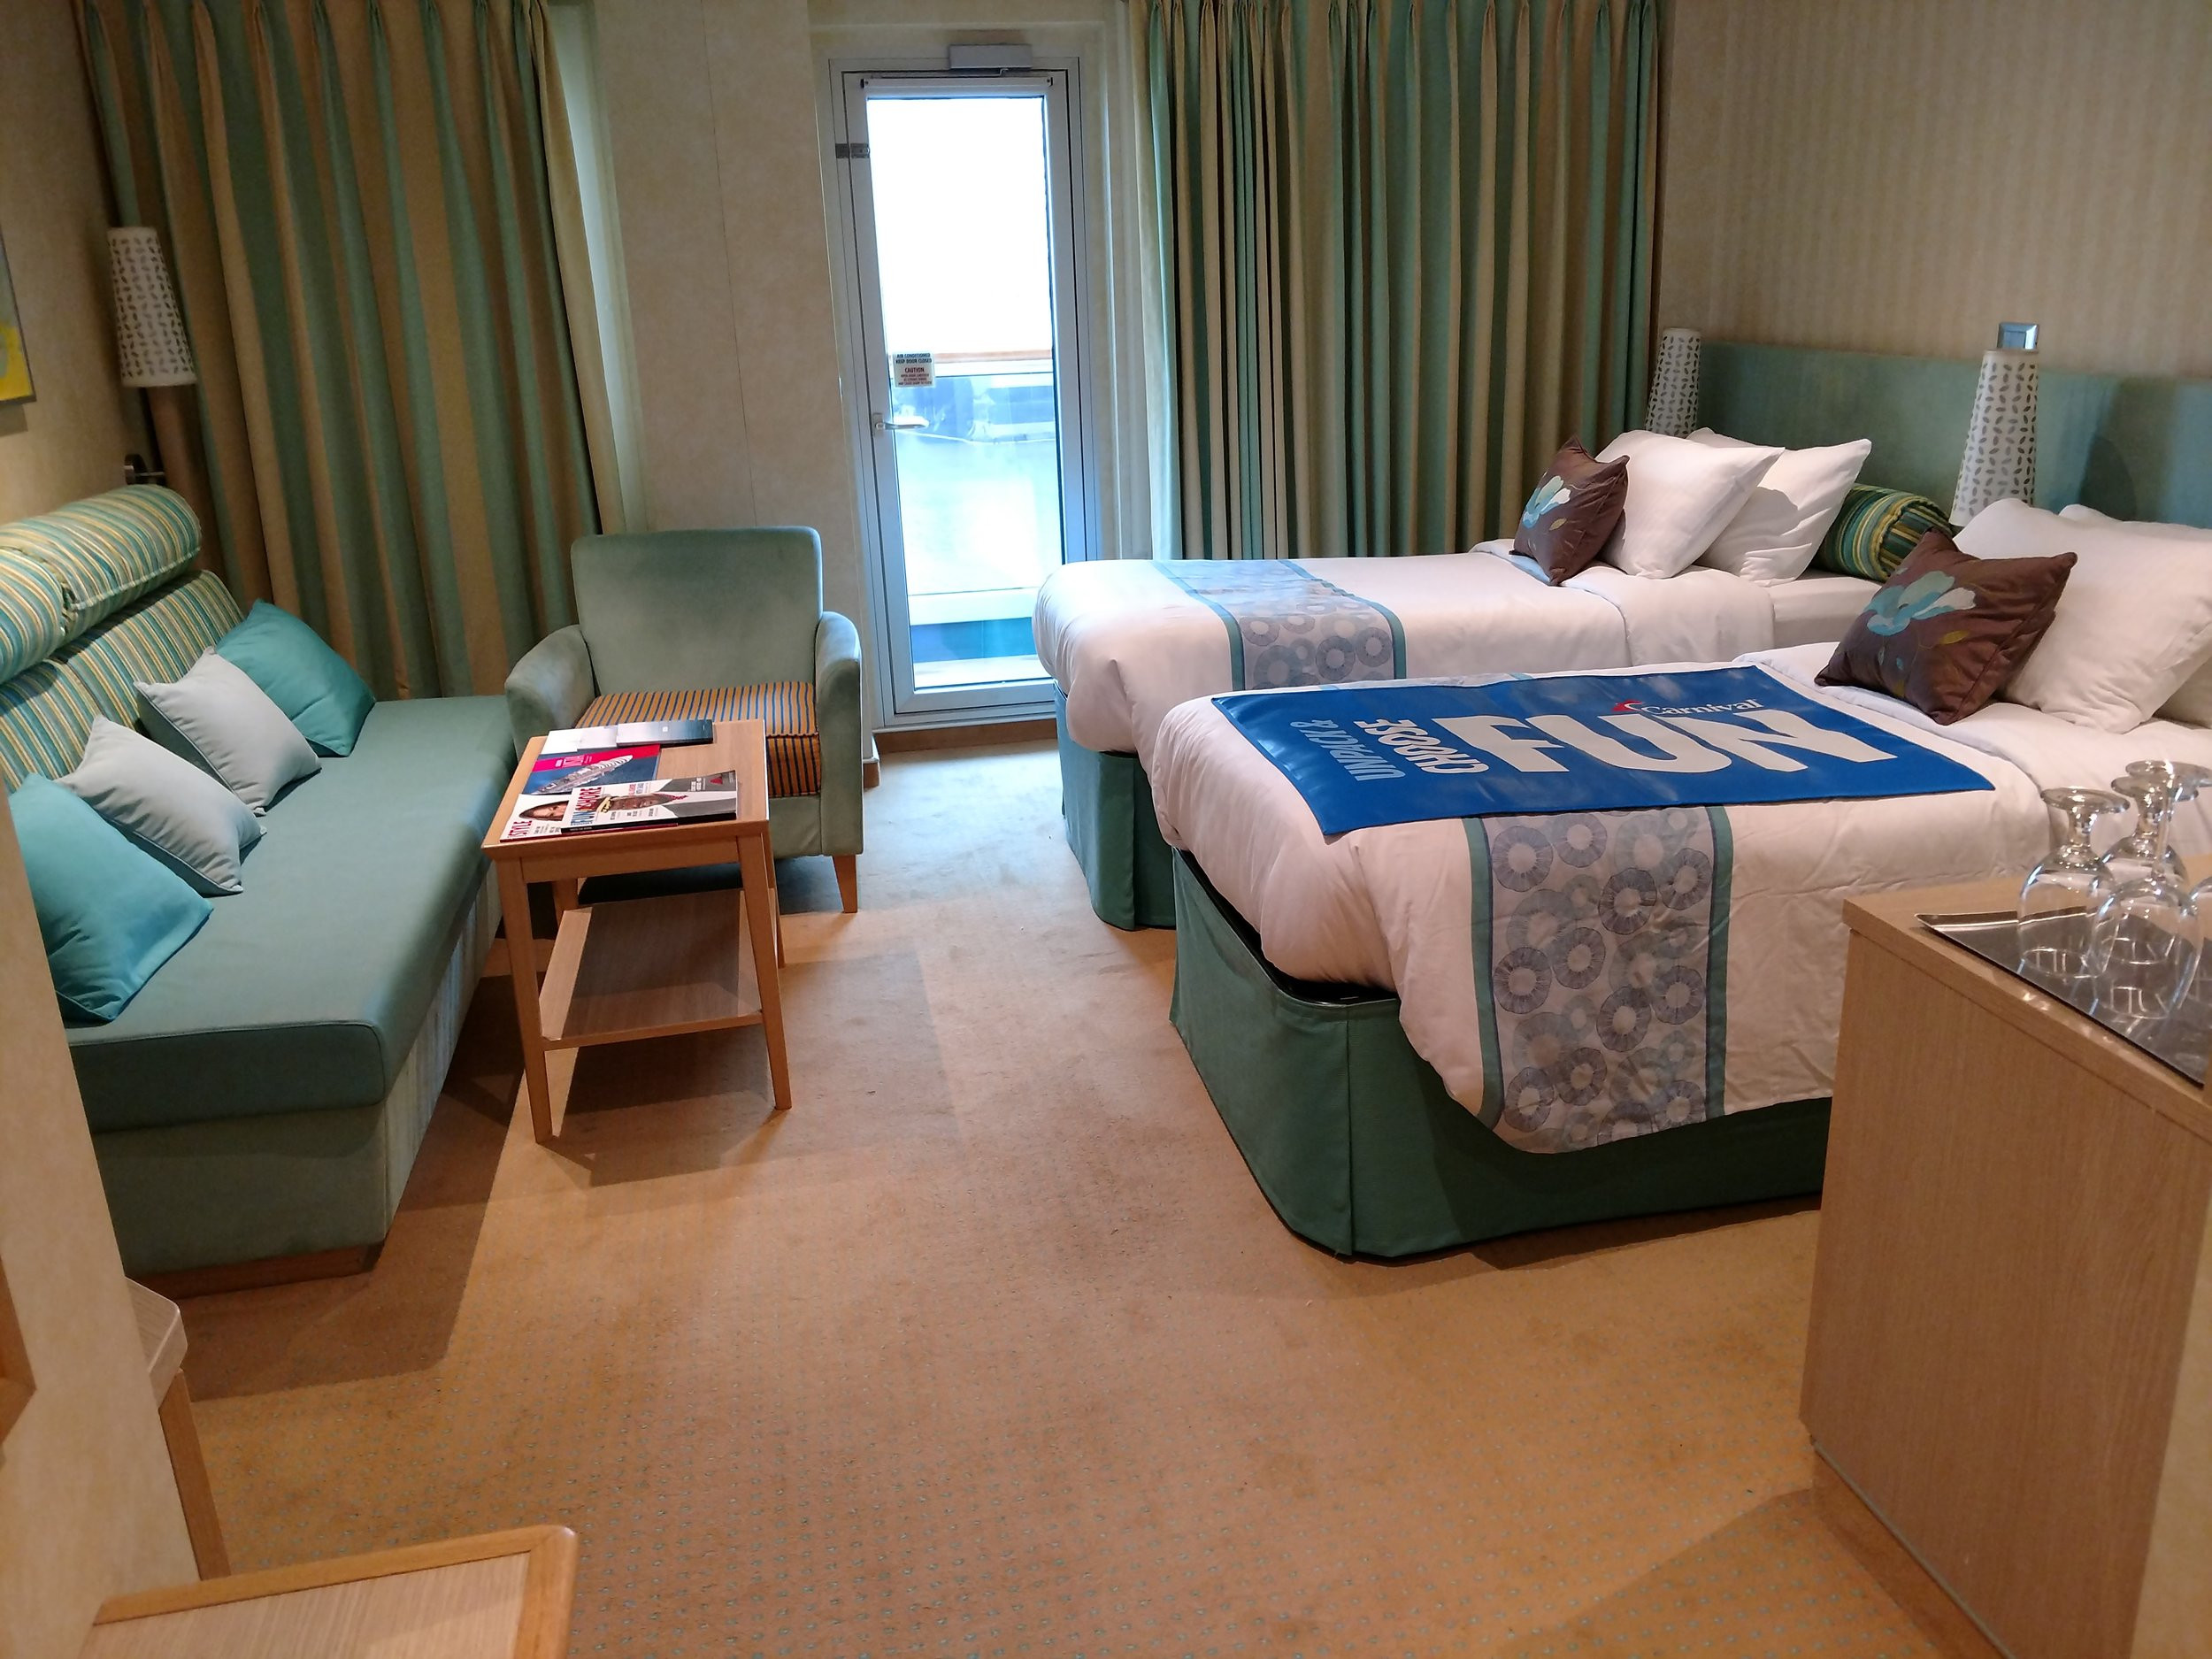 Balcony stateroom with two twin beds